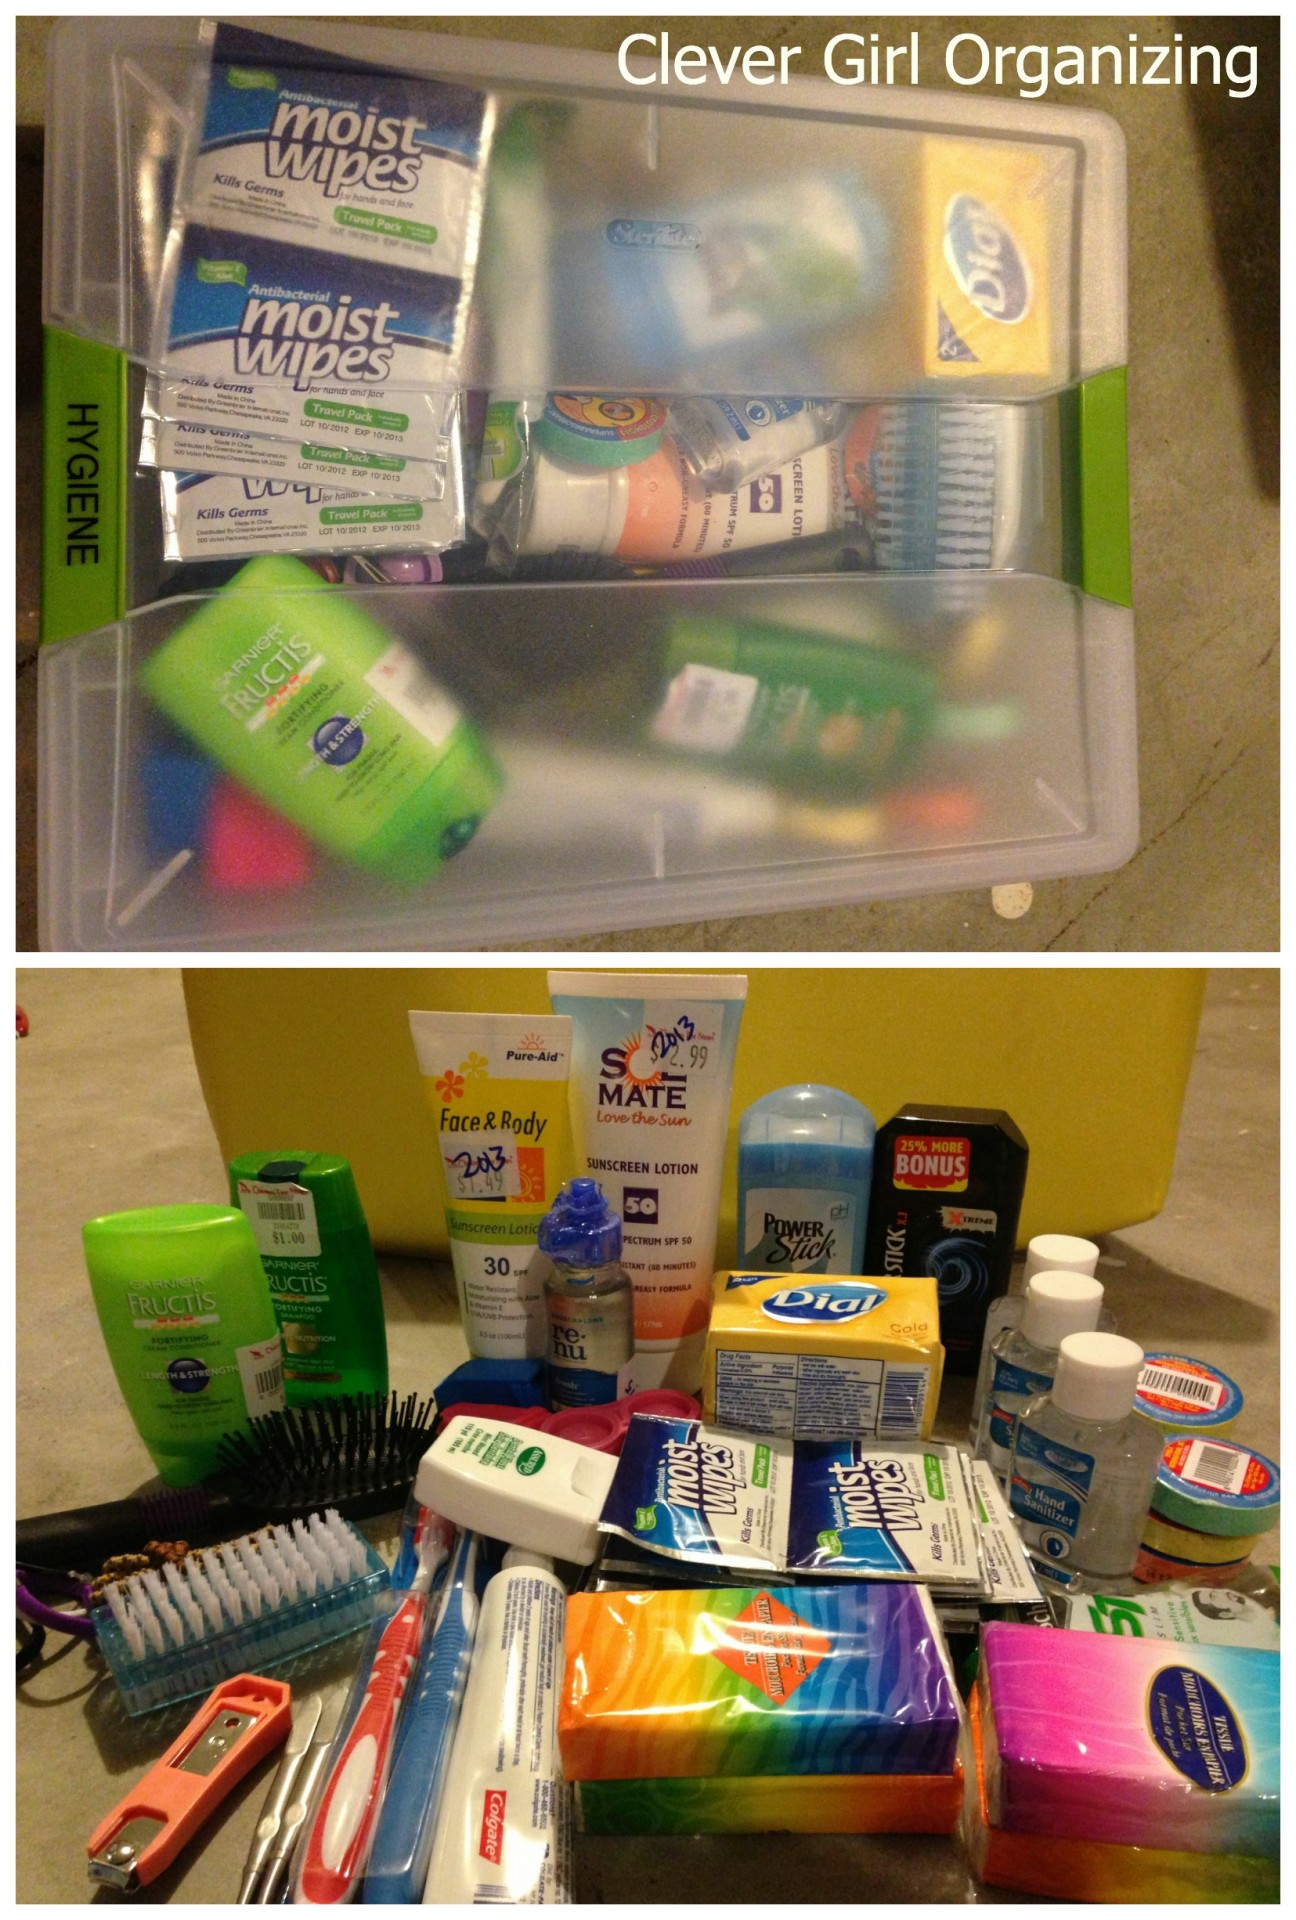 Toothbrush/paste, Contact Lens Case and Solution, Deodorant, Soap, Shampoo, Compact Towels, Antibacterial Gel, Wipes, Tissues, Sunscreen, Hairbrush, etc.